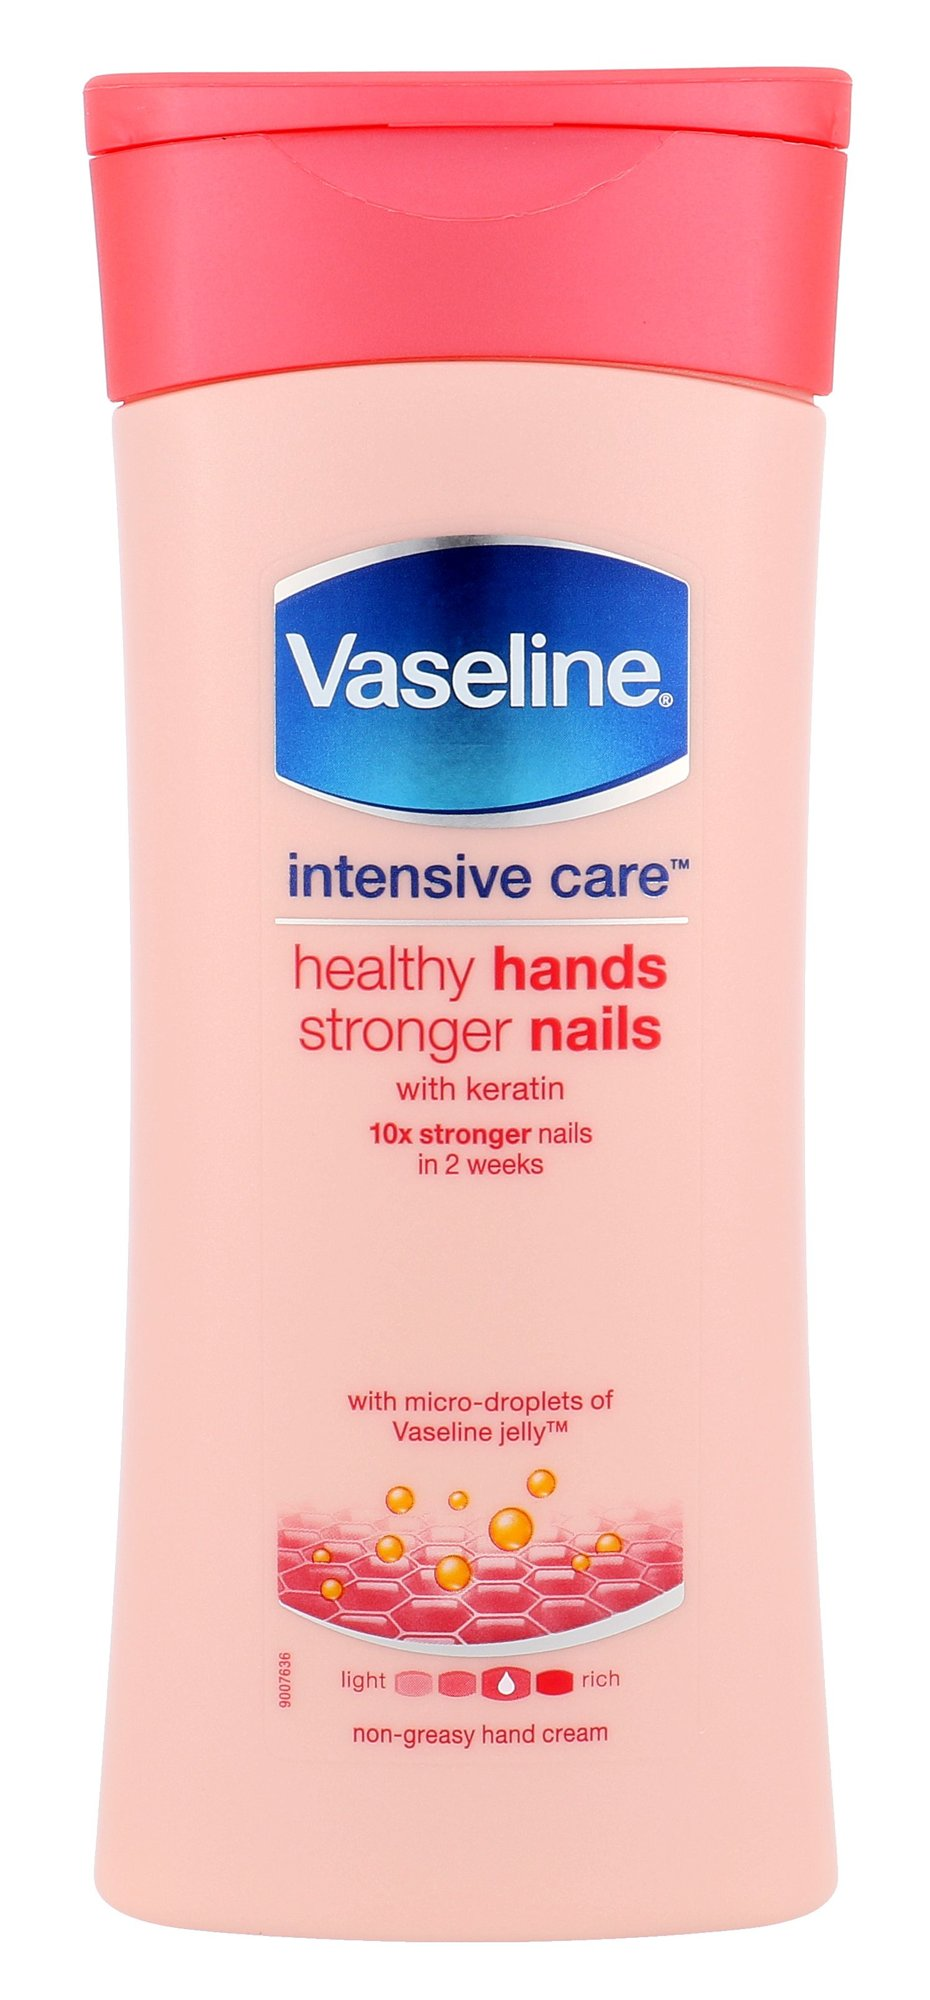 Vaseline Intensive Care Cosmetic 200ml  Healthy Hands Stronger Nails